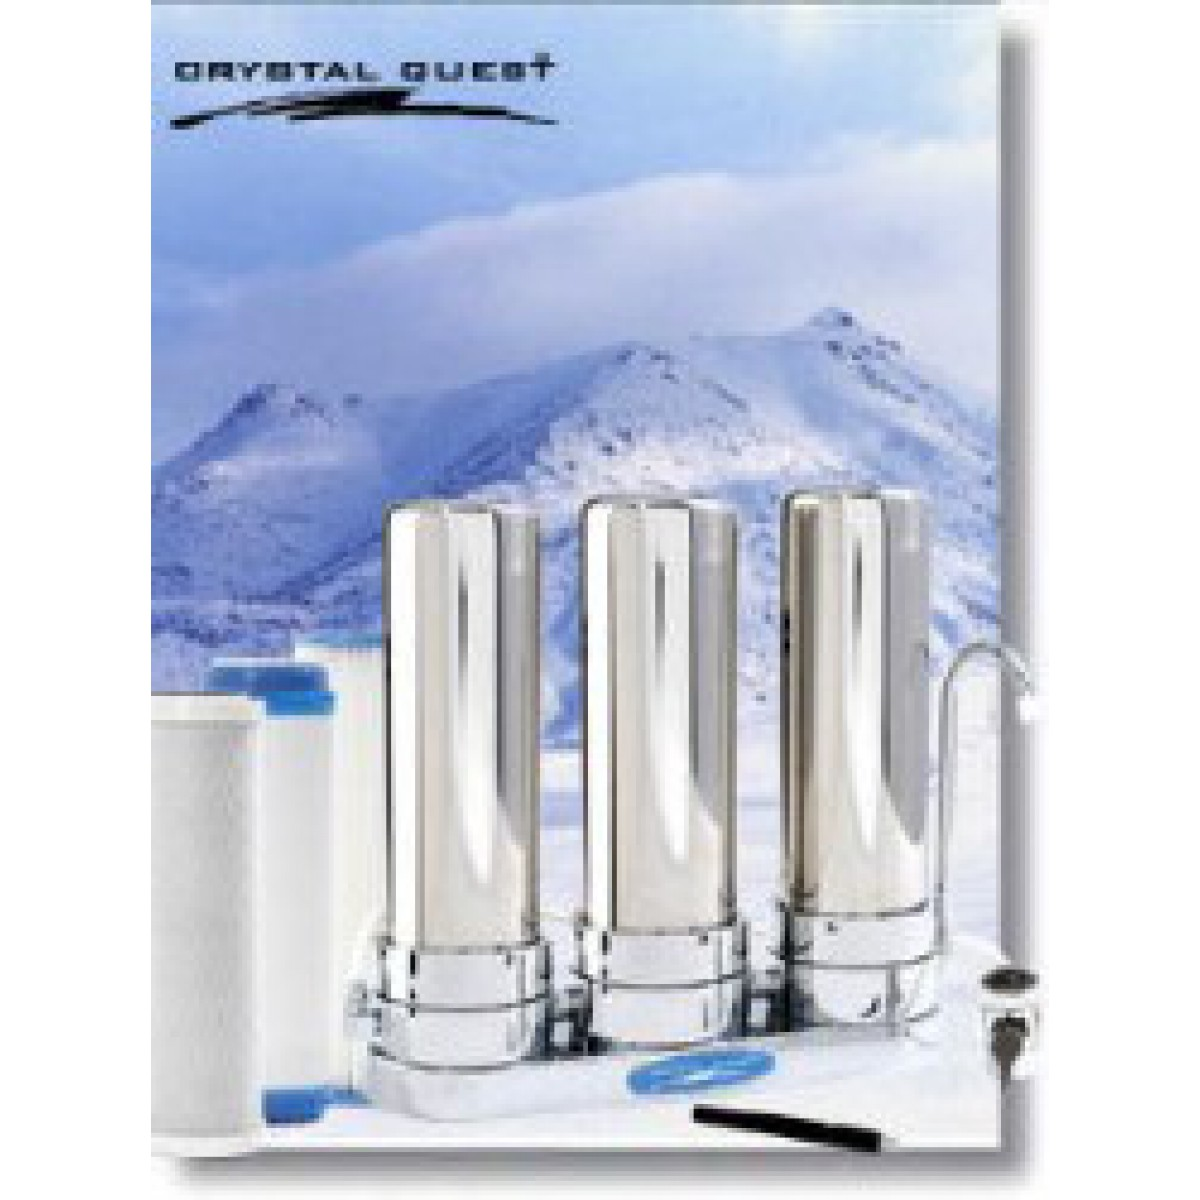 Countertop Water Filter Reviews : Crystal Quest Countertop Replaceable Triple Multi PLUS Water Filter ...